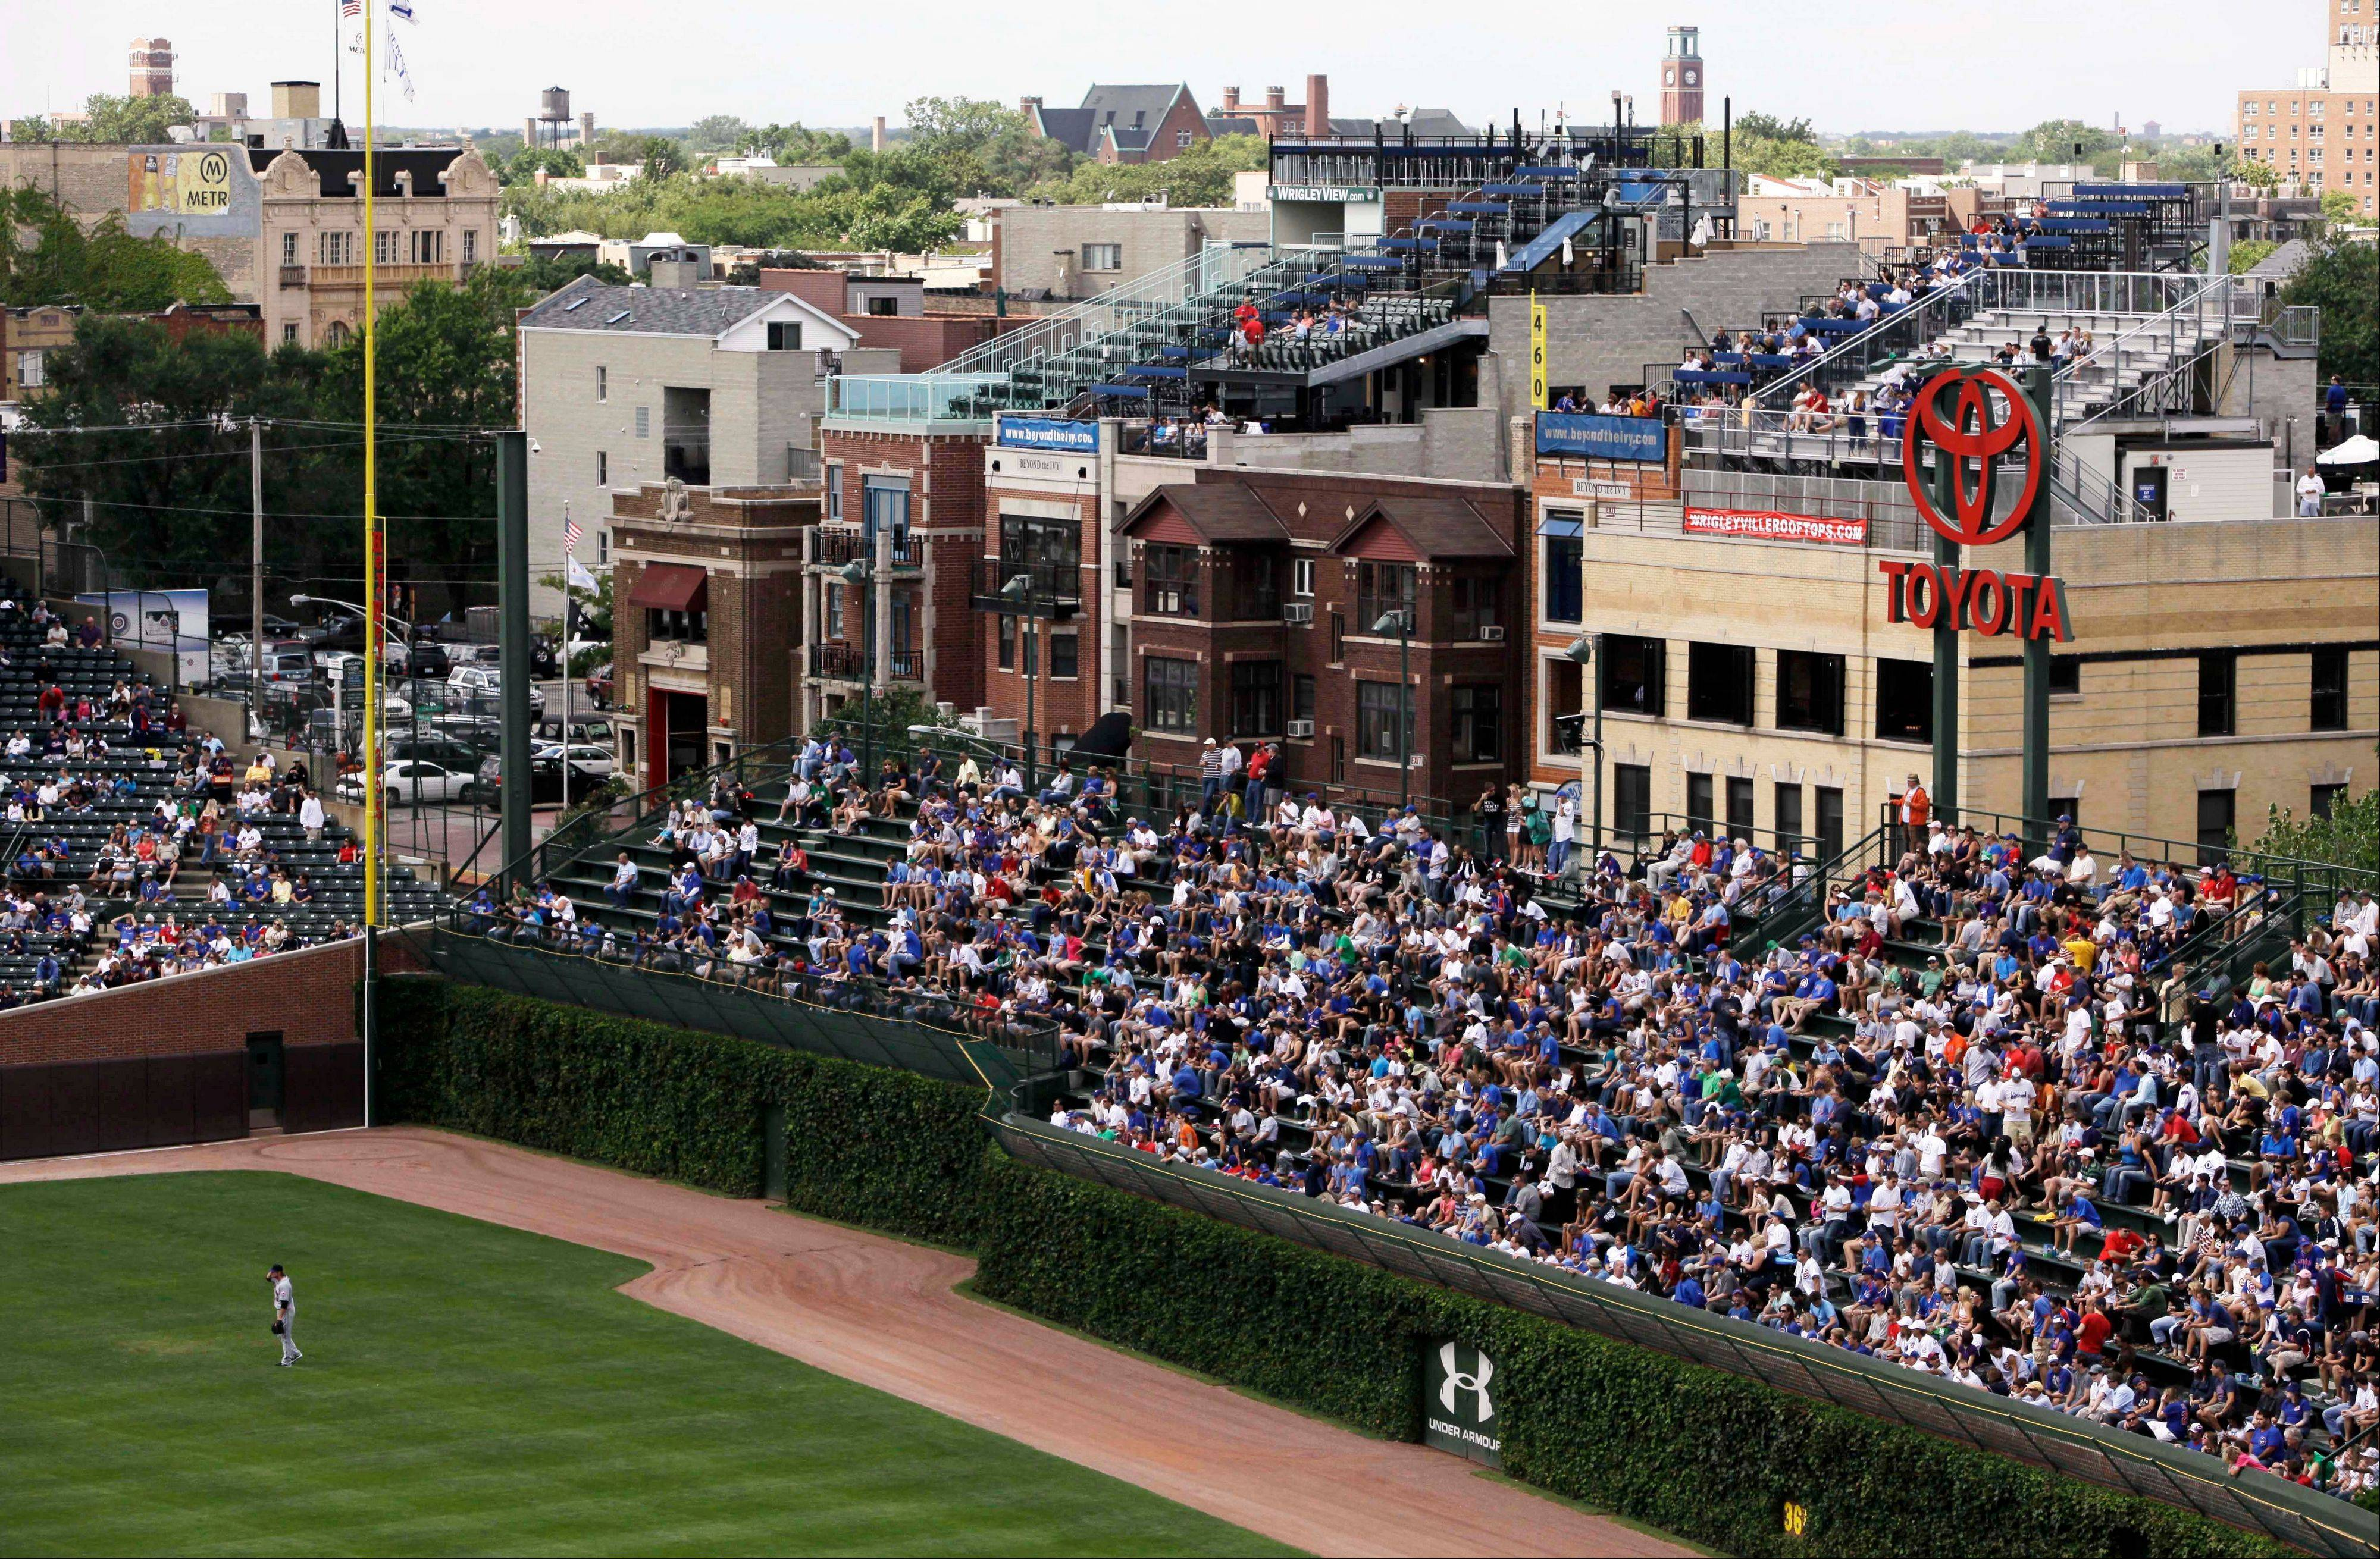 In this Sept. 3, 2010 file photo, spectators enjoy the view from one of the many rooftop bleachers along Waveland Avenue outside the left field wall at Wrigley Field during a Chicago Cubs baseball game in Chicago. A battle is heating up between the Cubs and rooftop owners as the team proposes renovations, including a Jumbotron in the bleachers, that would block the views and threaten the business those views have created. (AP Photo/Kiichiro Sato, File)